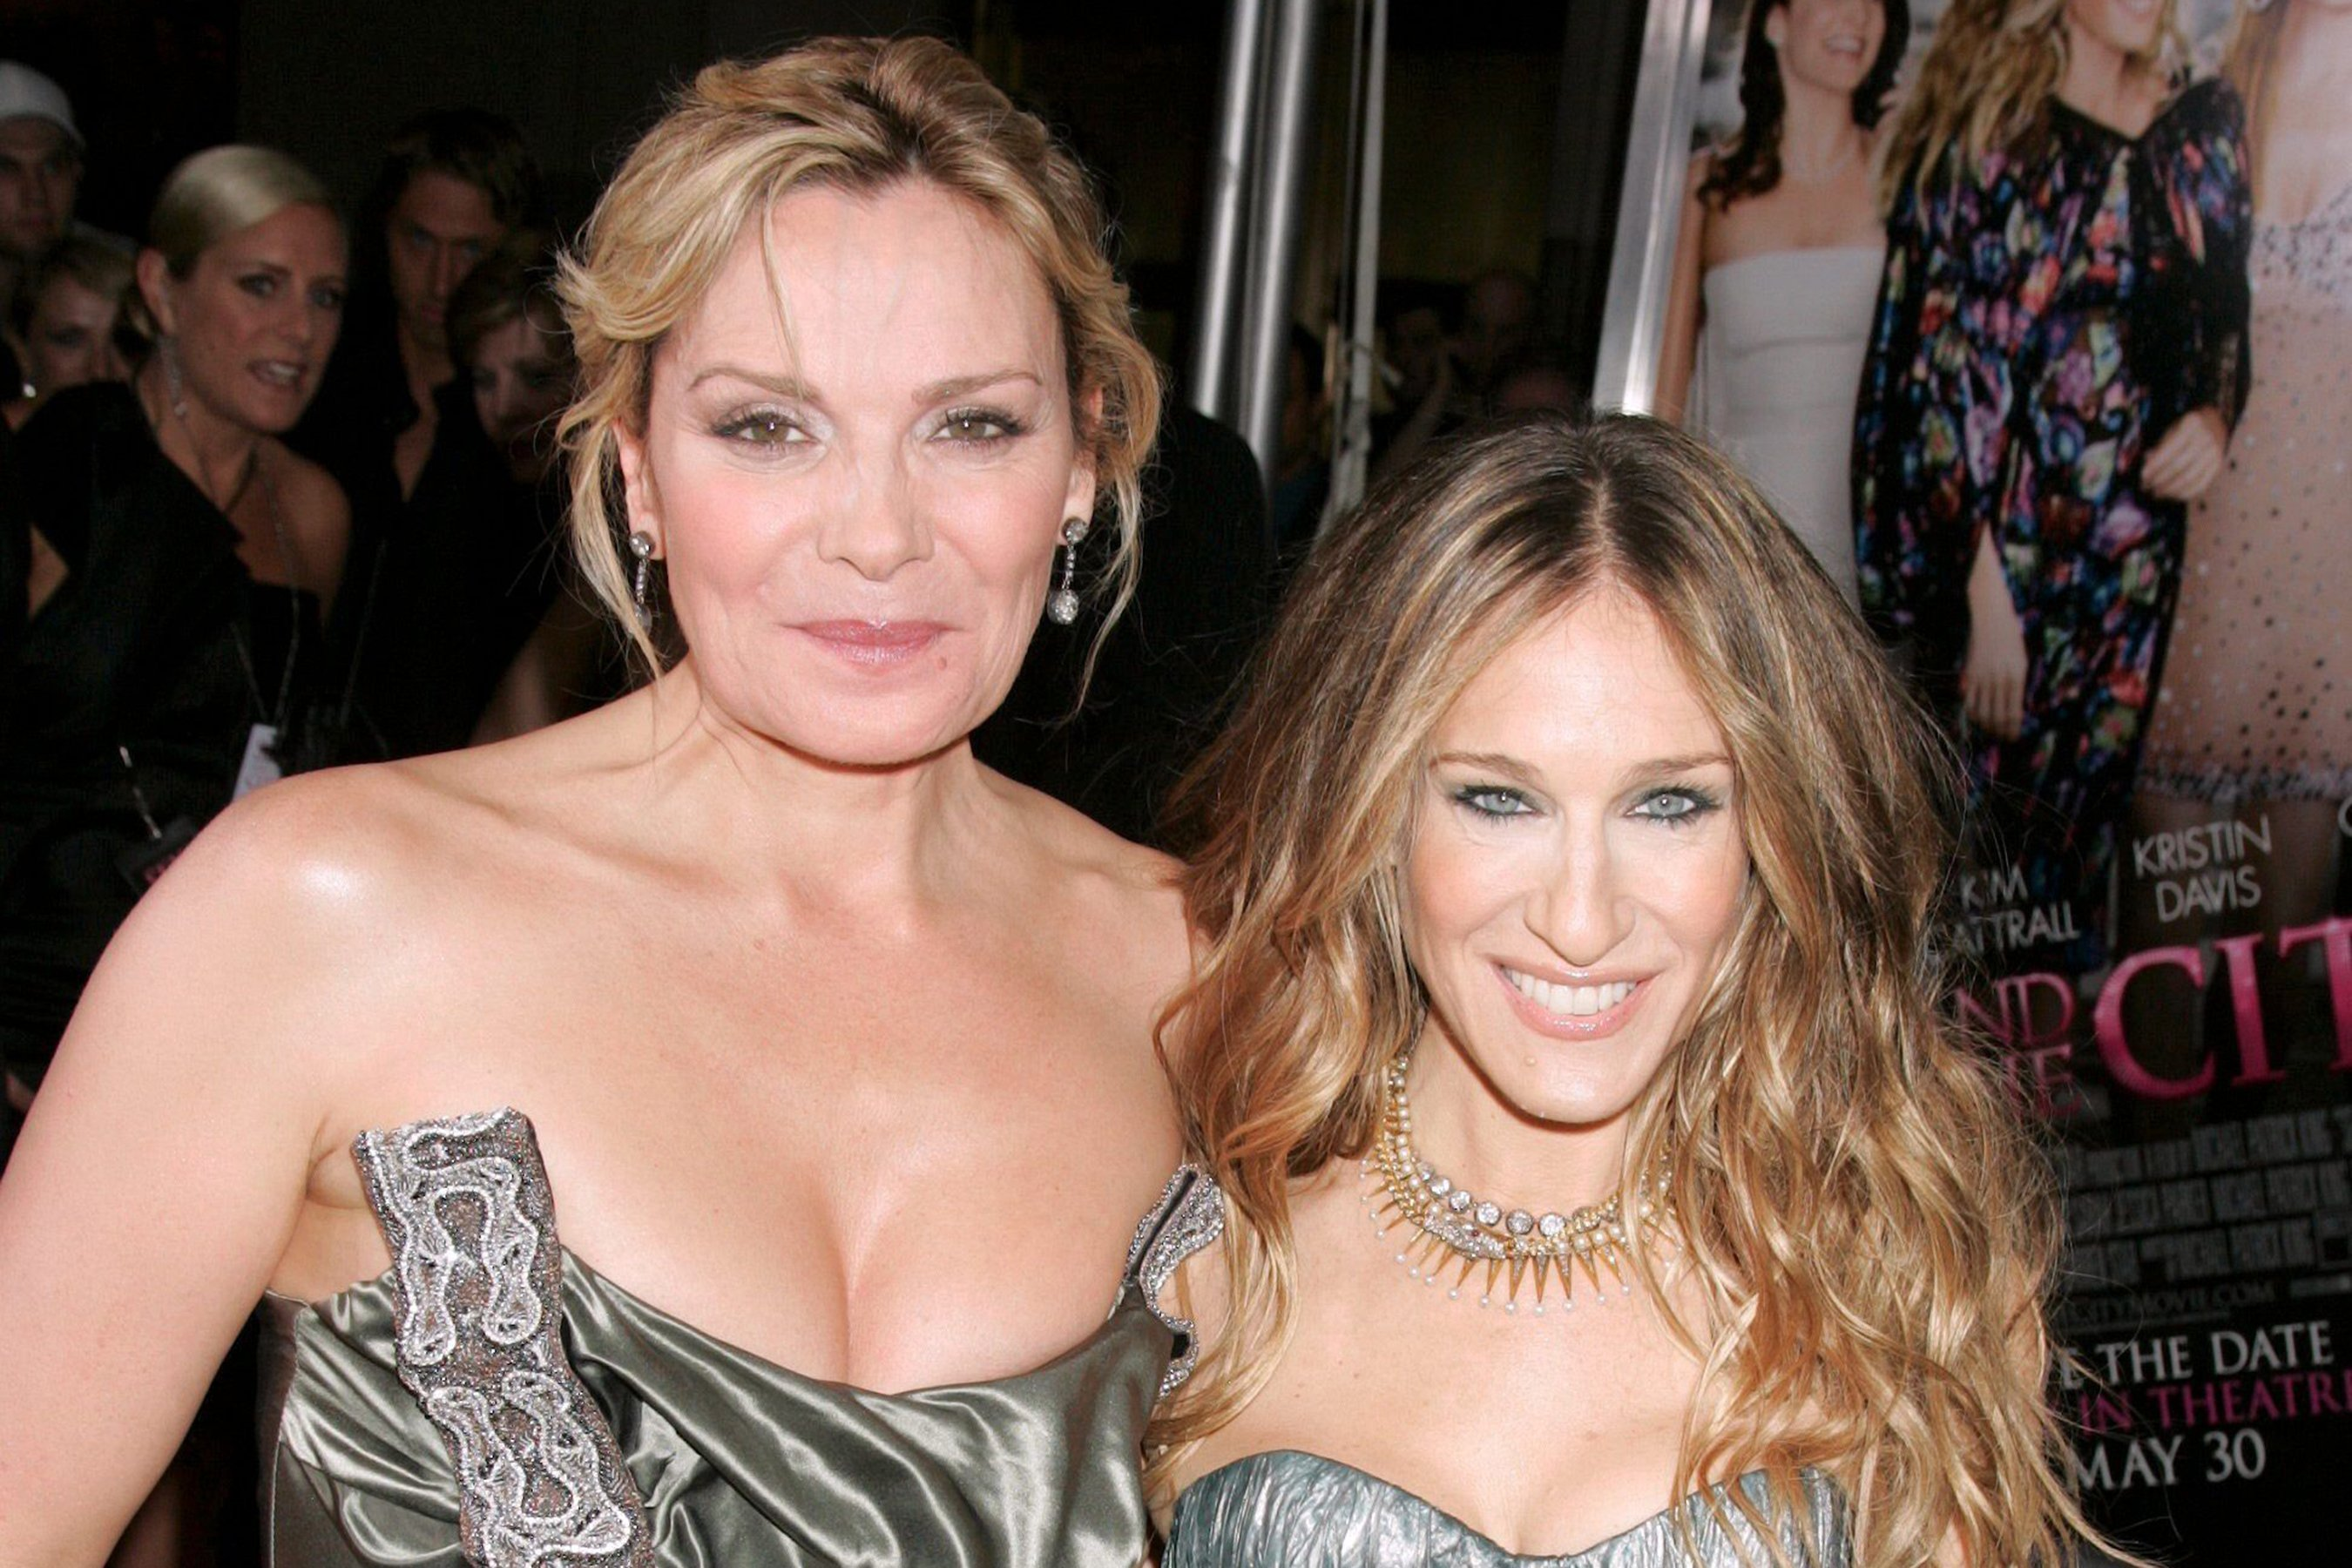 Kim Cattrall tells SJP 'you are not my friend' 4 days after thanking costars following brother's death